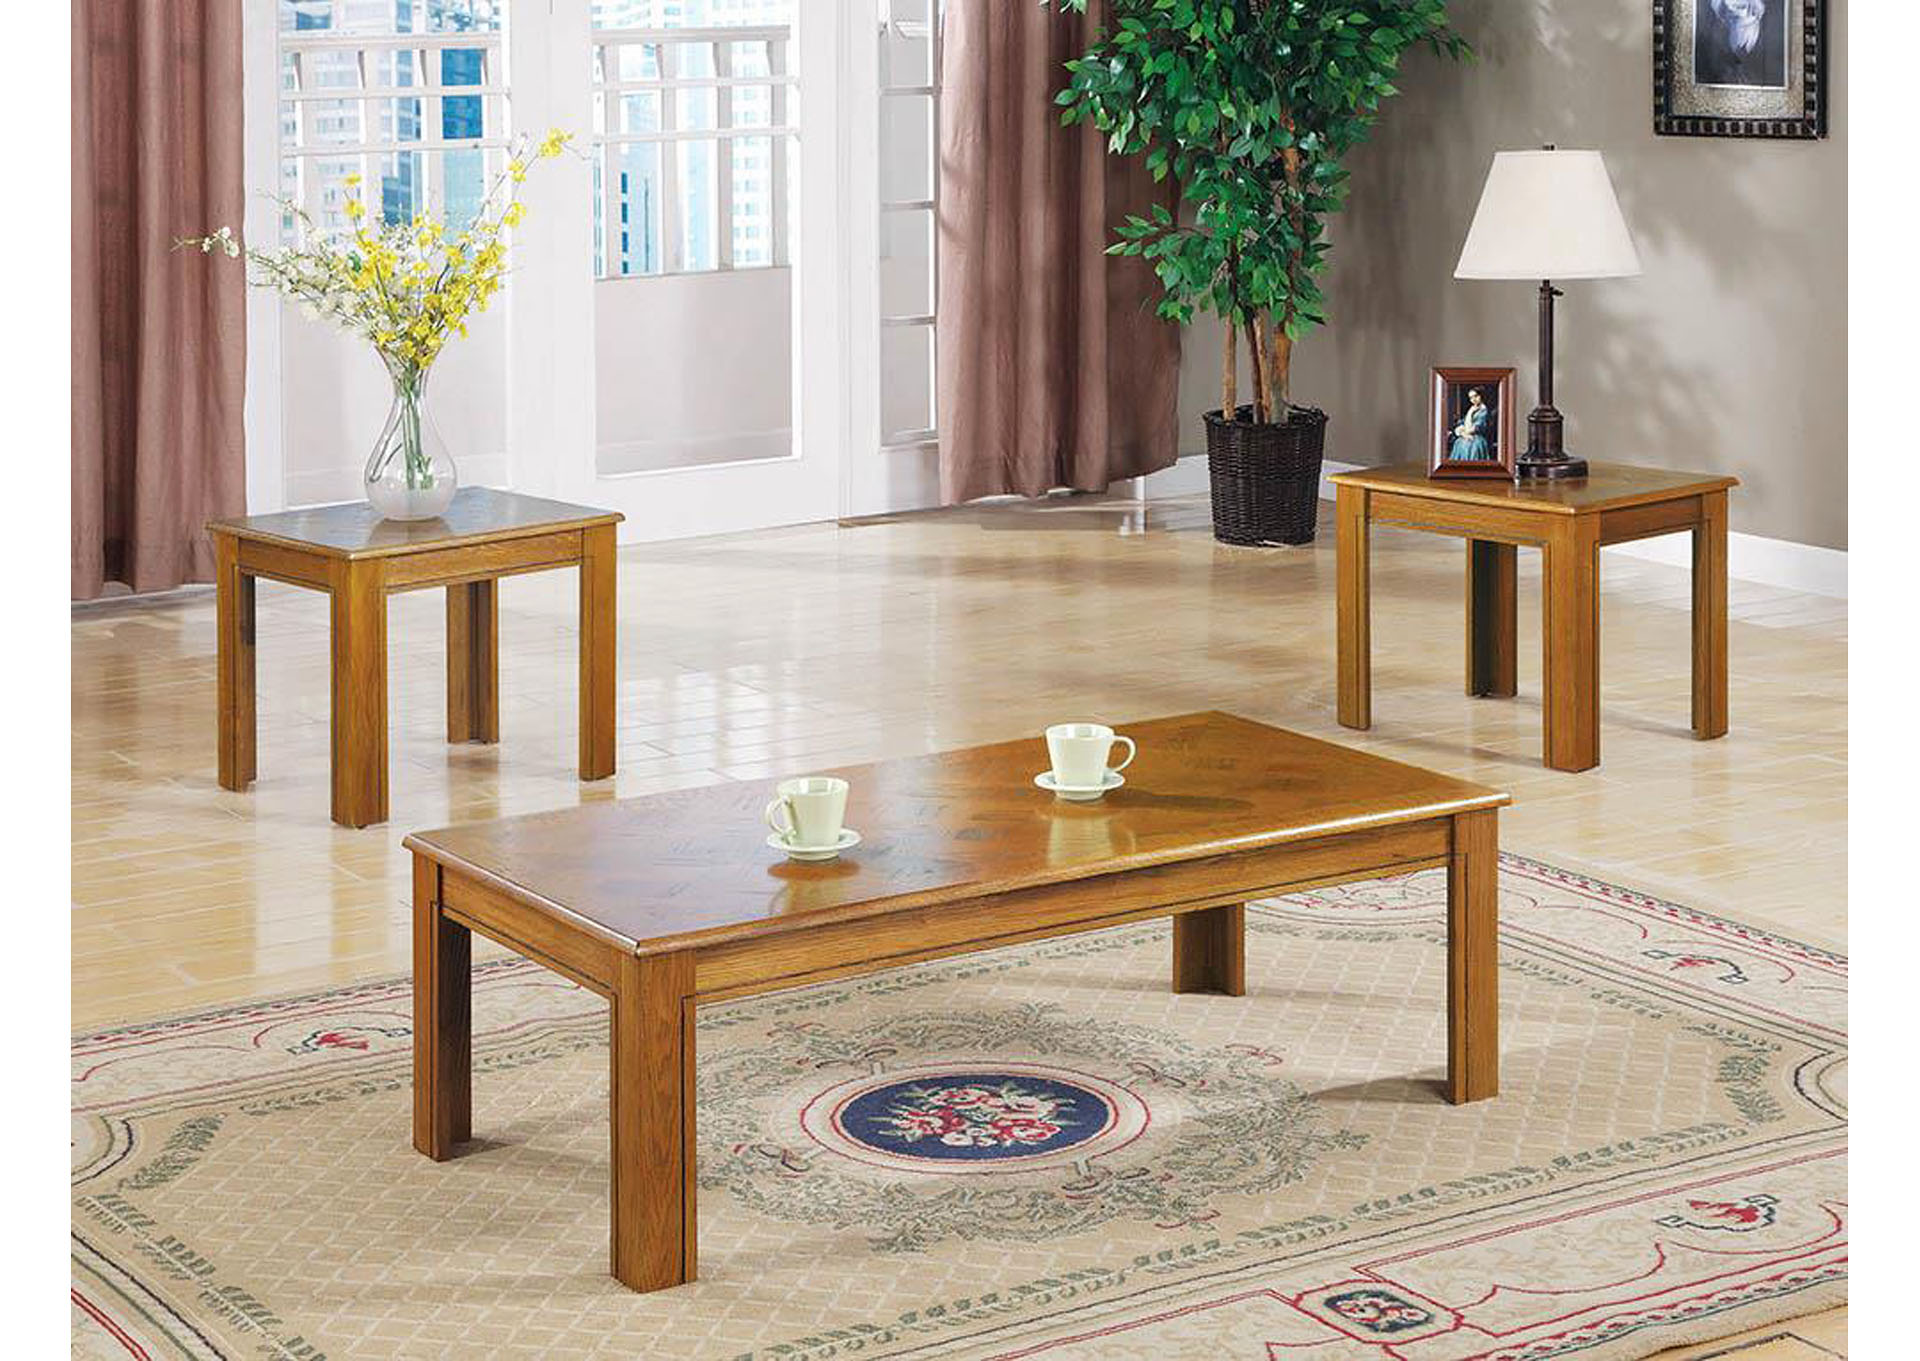 Veneer Parquet 3 Piece Table Set,Coaster Furniture